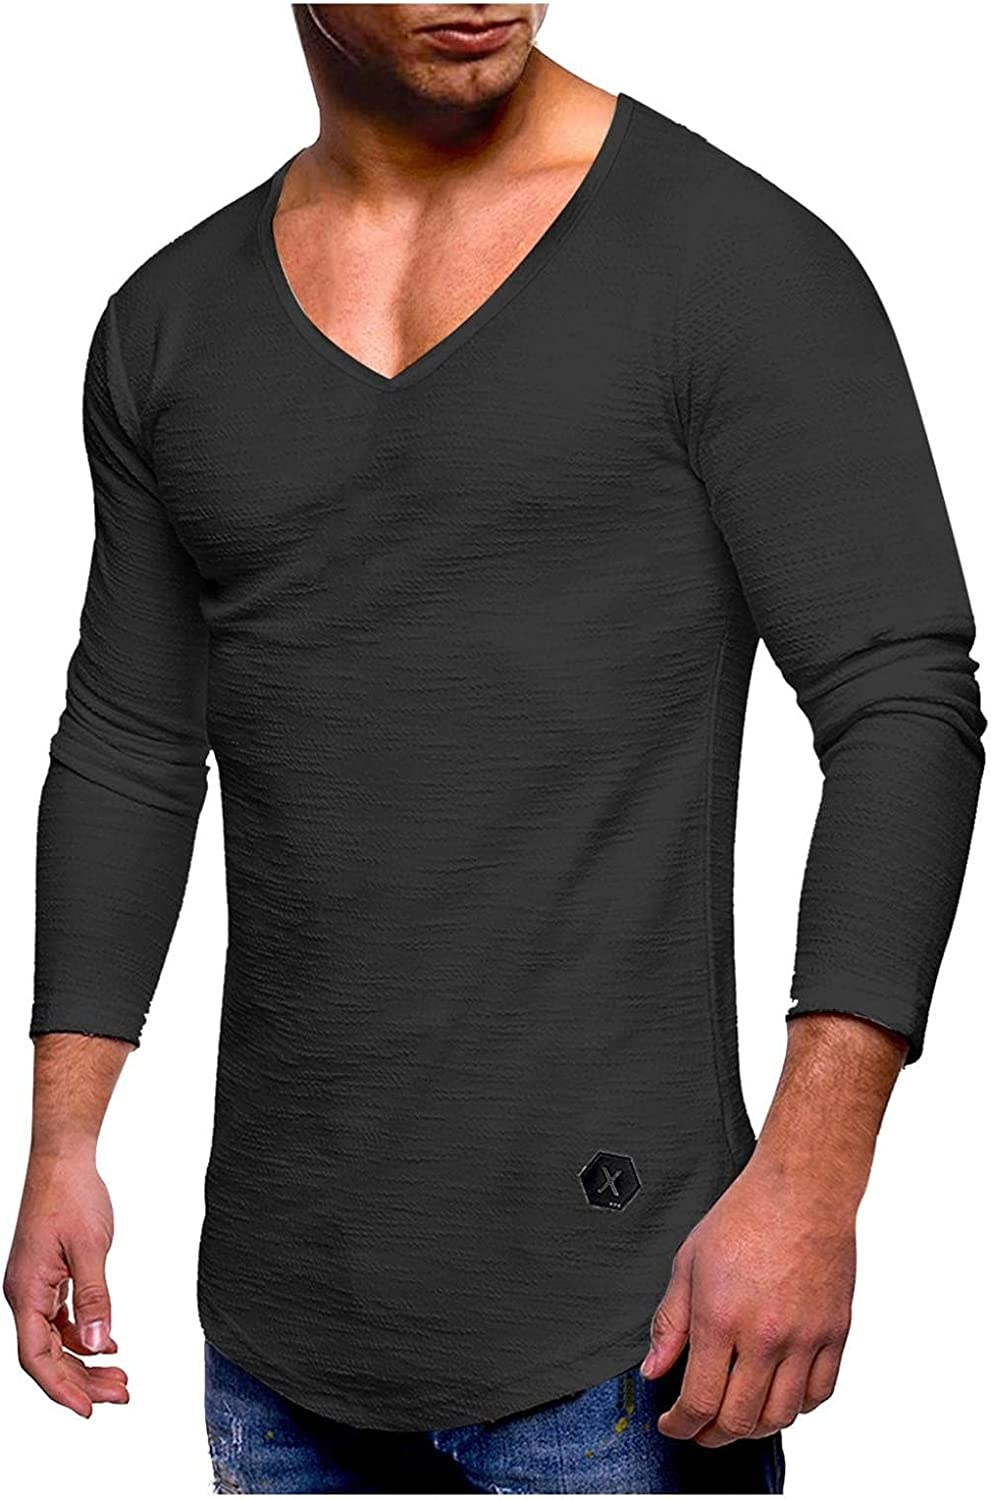 Shirts for Men Long Sleeve Arm Zippered Round Neck Pullover Top UV Sun Protection Blouse Athletic Moisture Wicking Tee